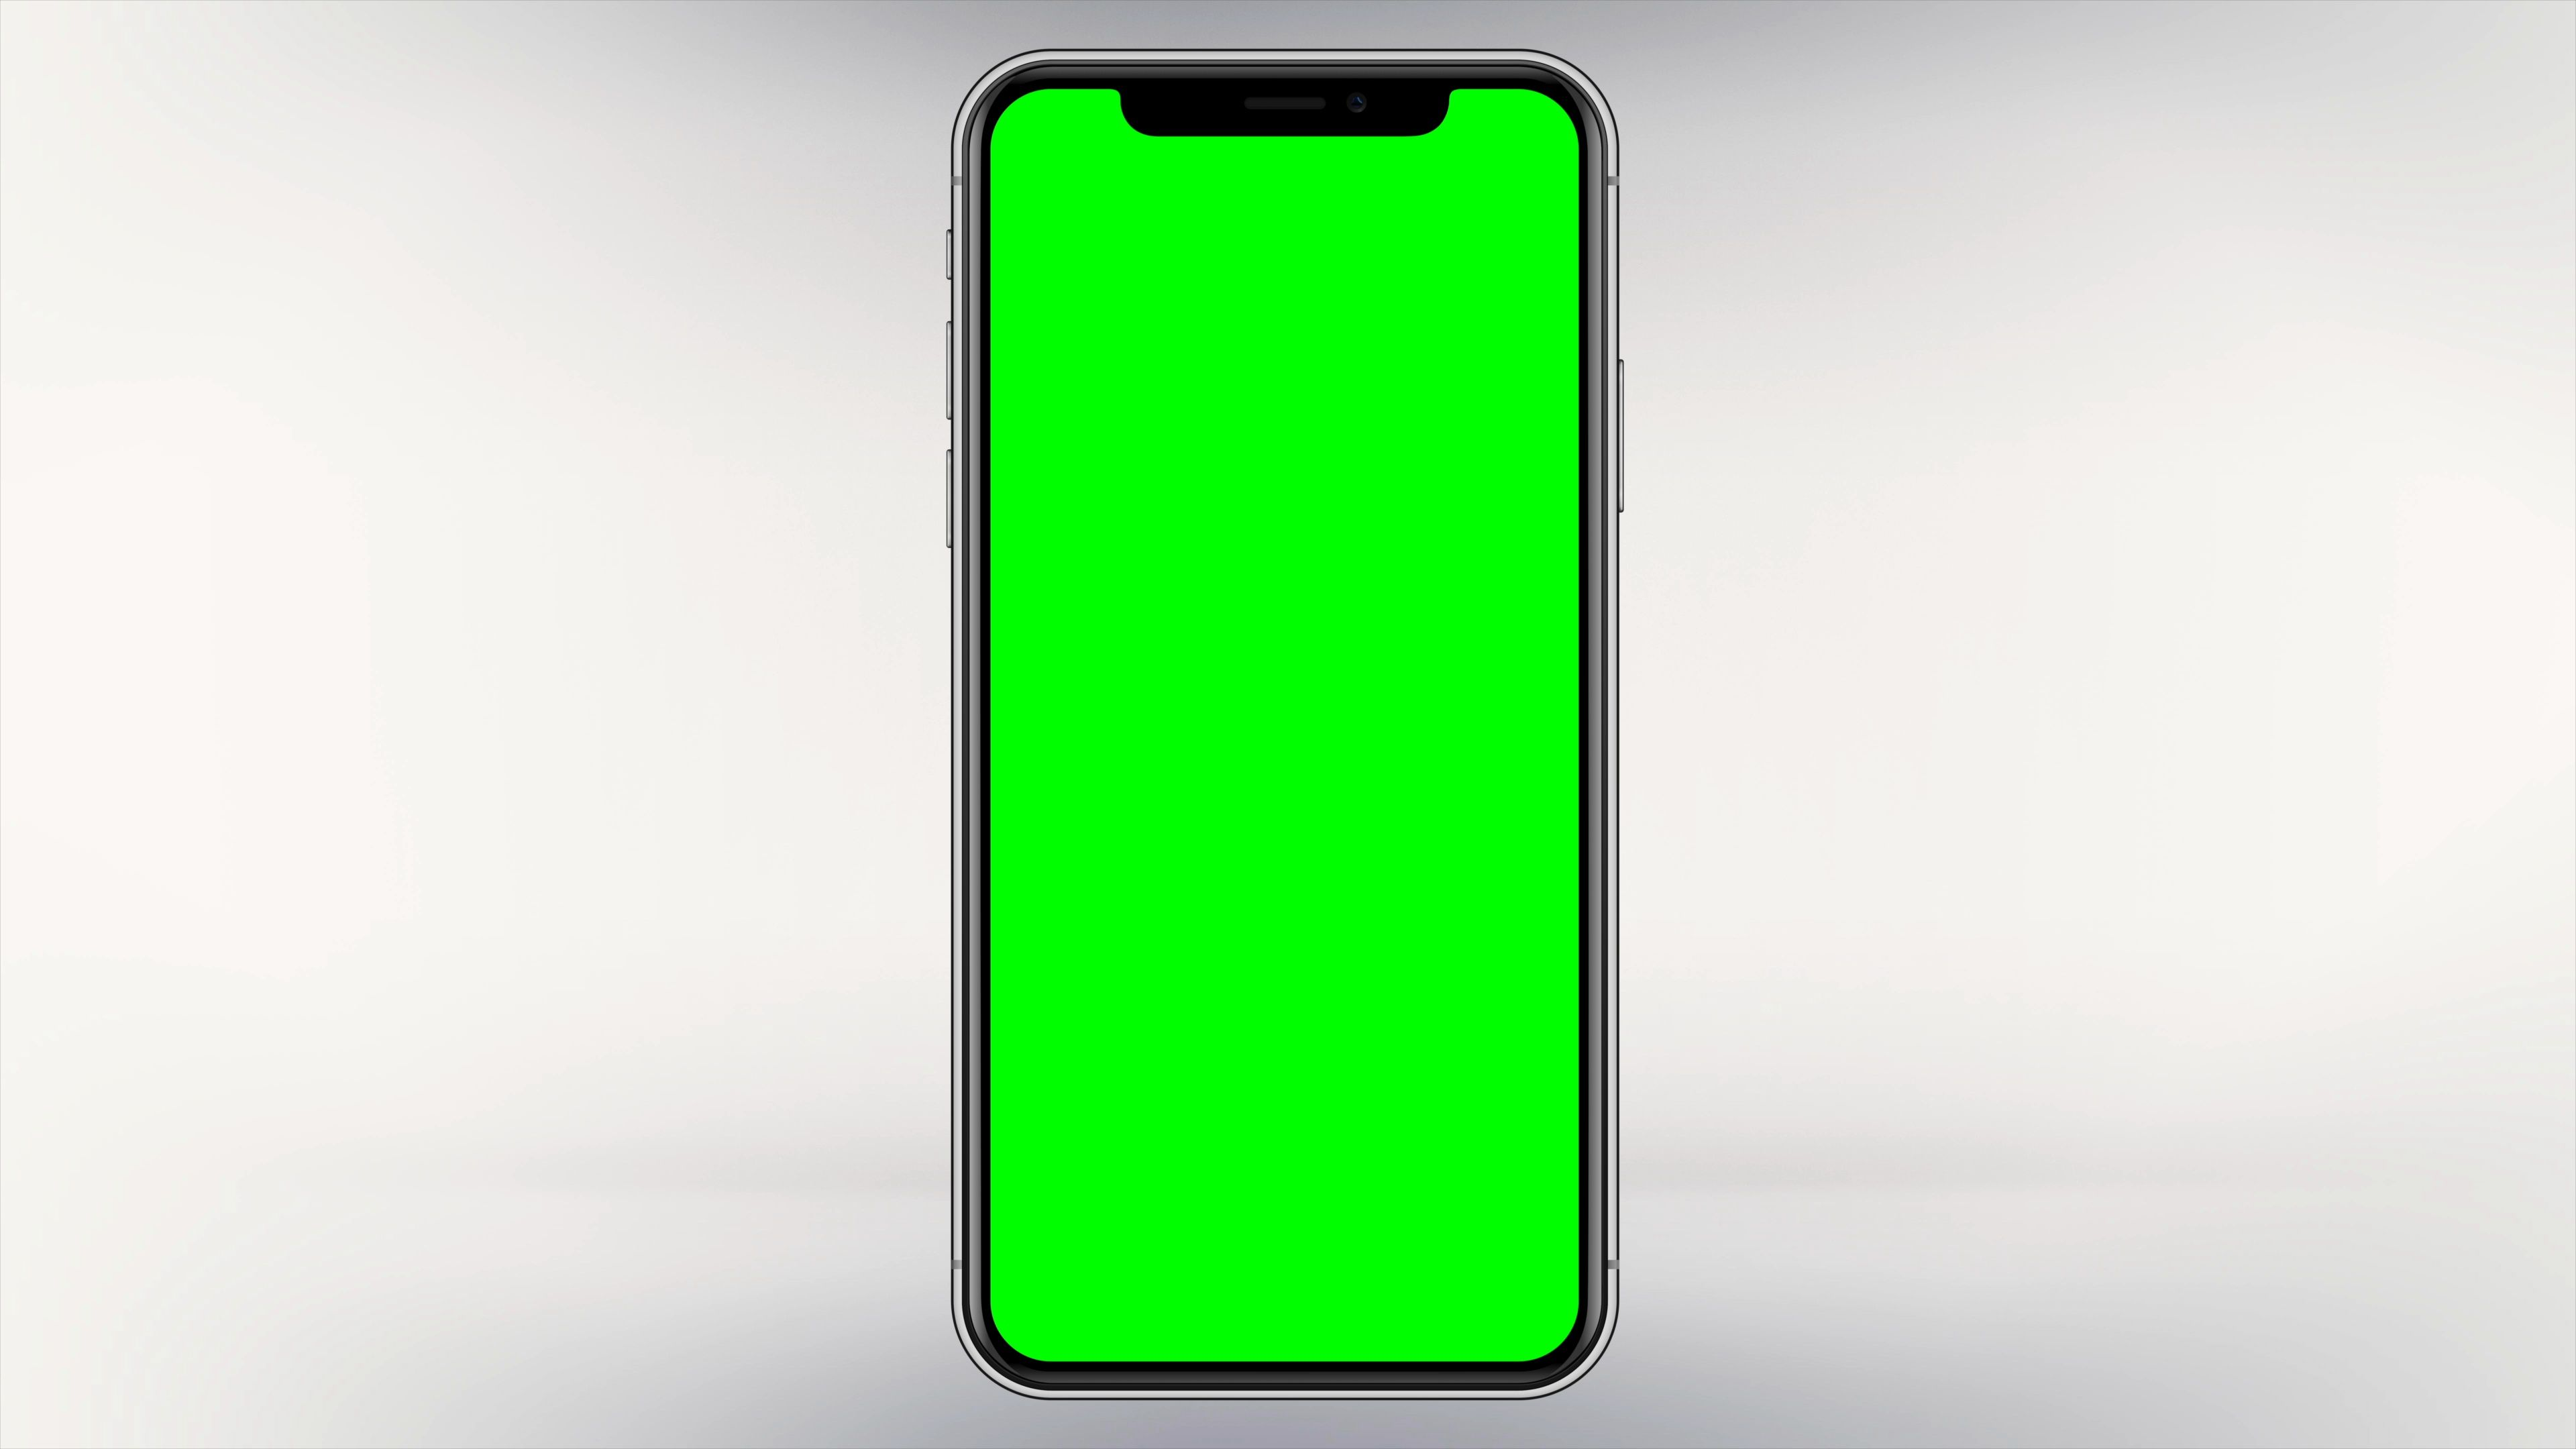 Blank iPhone X Green Screen Mobile Phone Isolated Smartphone White